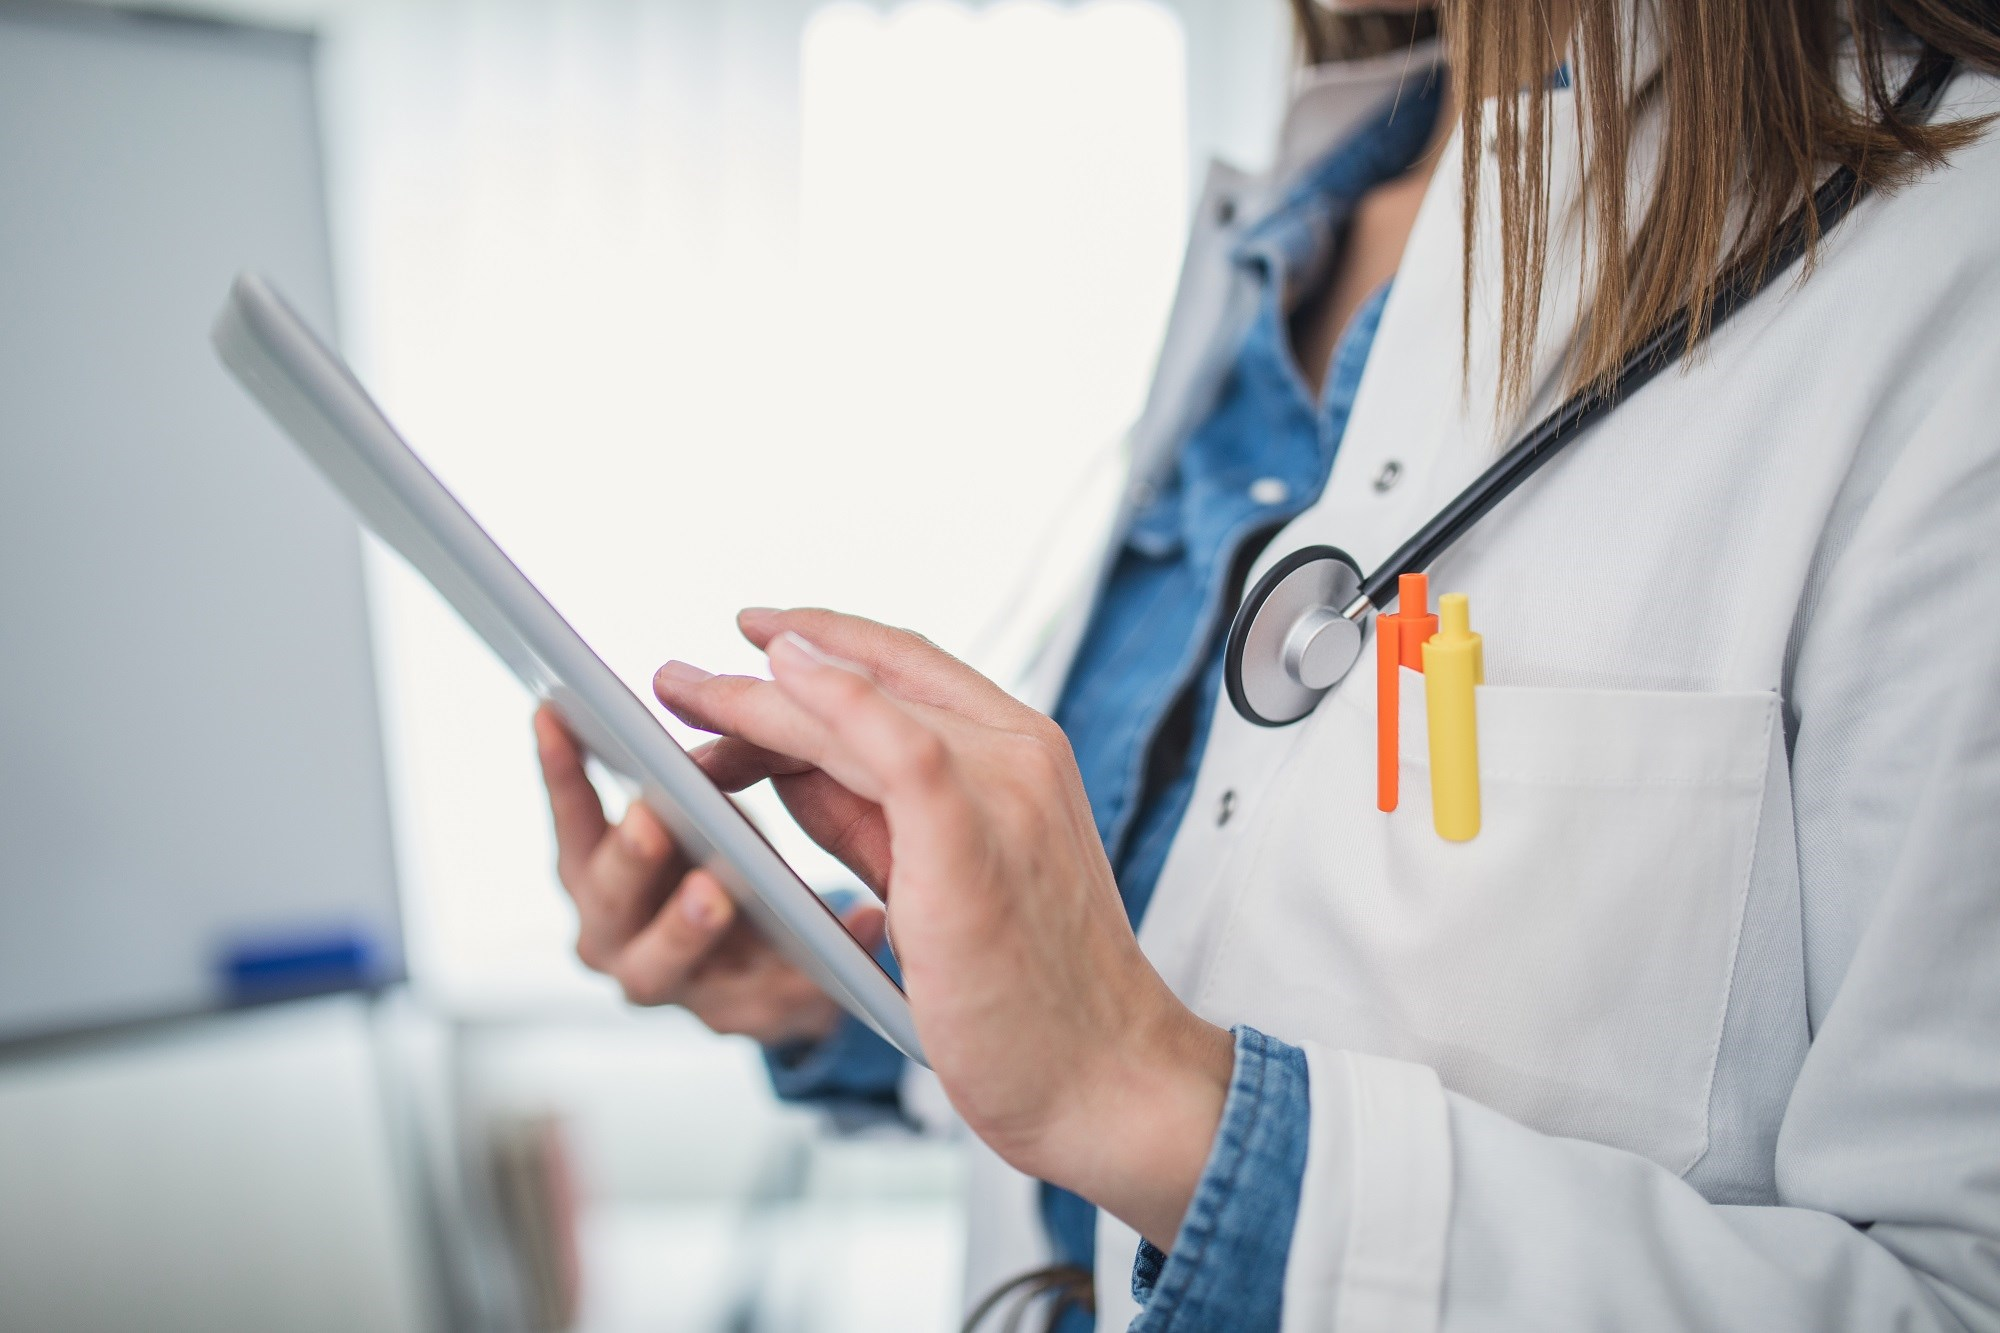 Physicians Want Substantial Improvements in EHRs